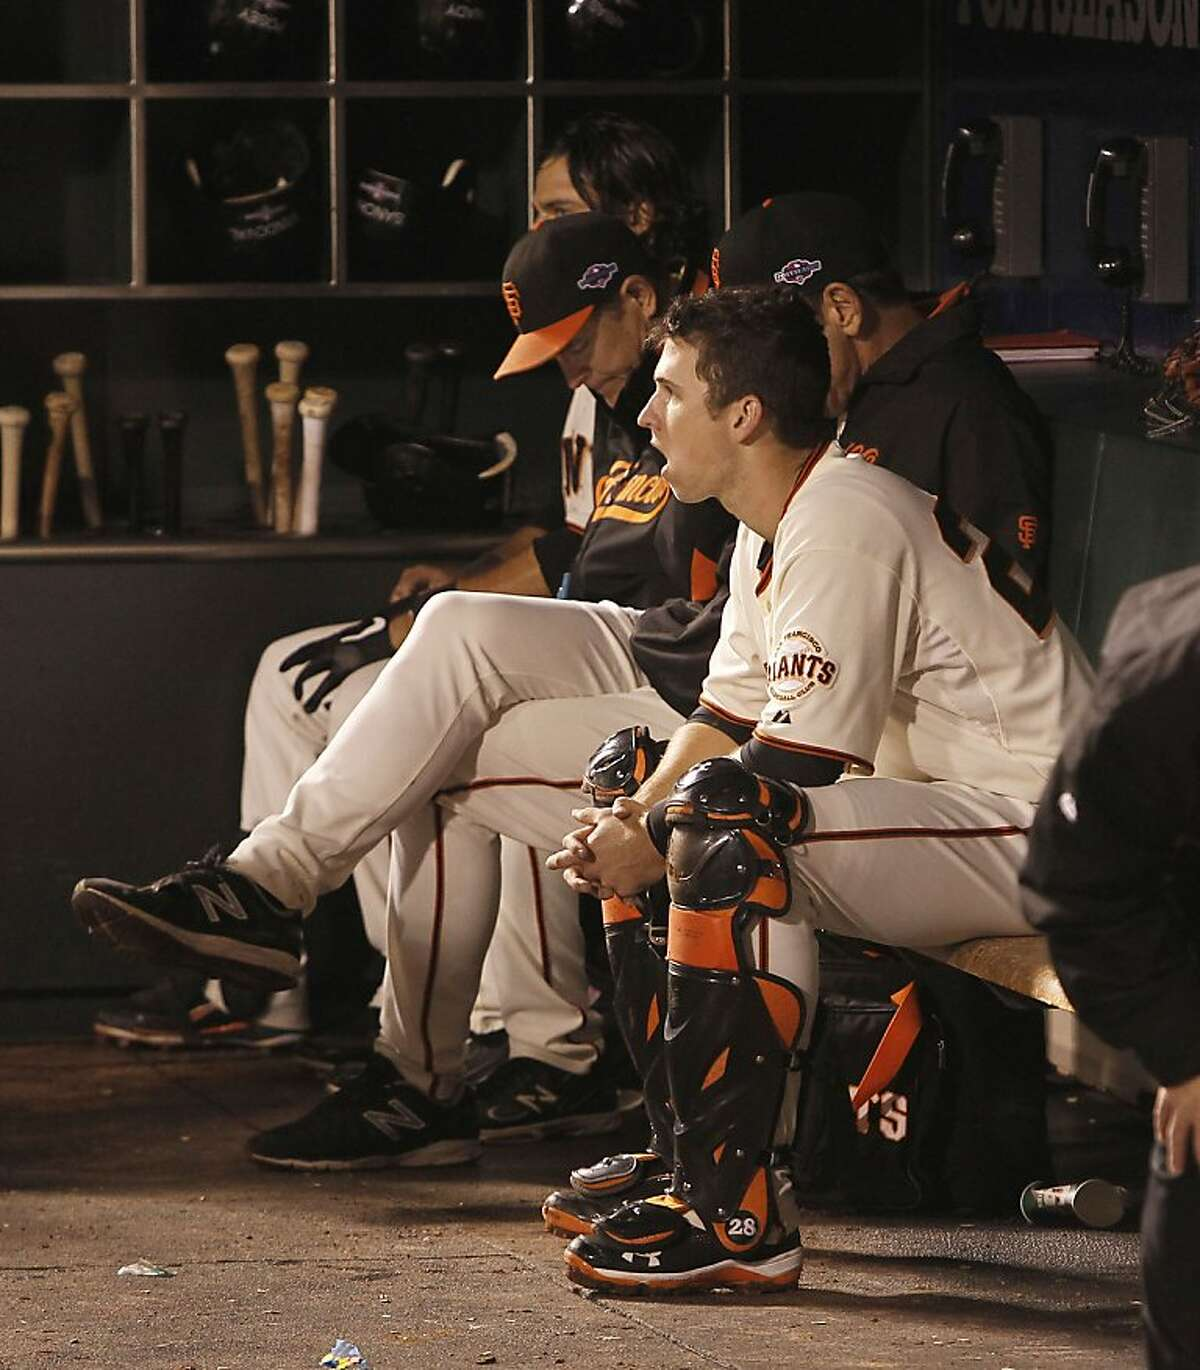 Giants catcher Buster Posey watches from the dugout in the eighth inning as the San Francisco Giants go on to lose to the Cincinnati Reds 9-0 in game two of the National League Divisional Series at AT&T Park San Francisco, Calif., on Sunday October 7, 2012.